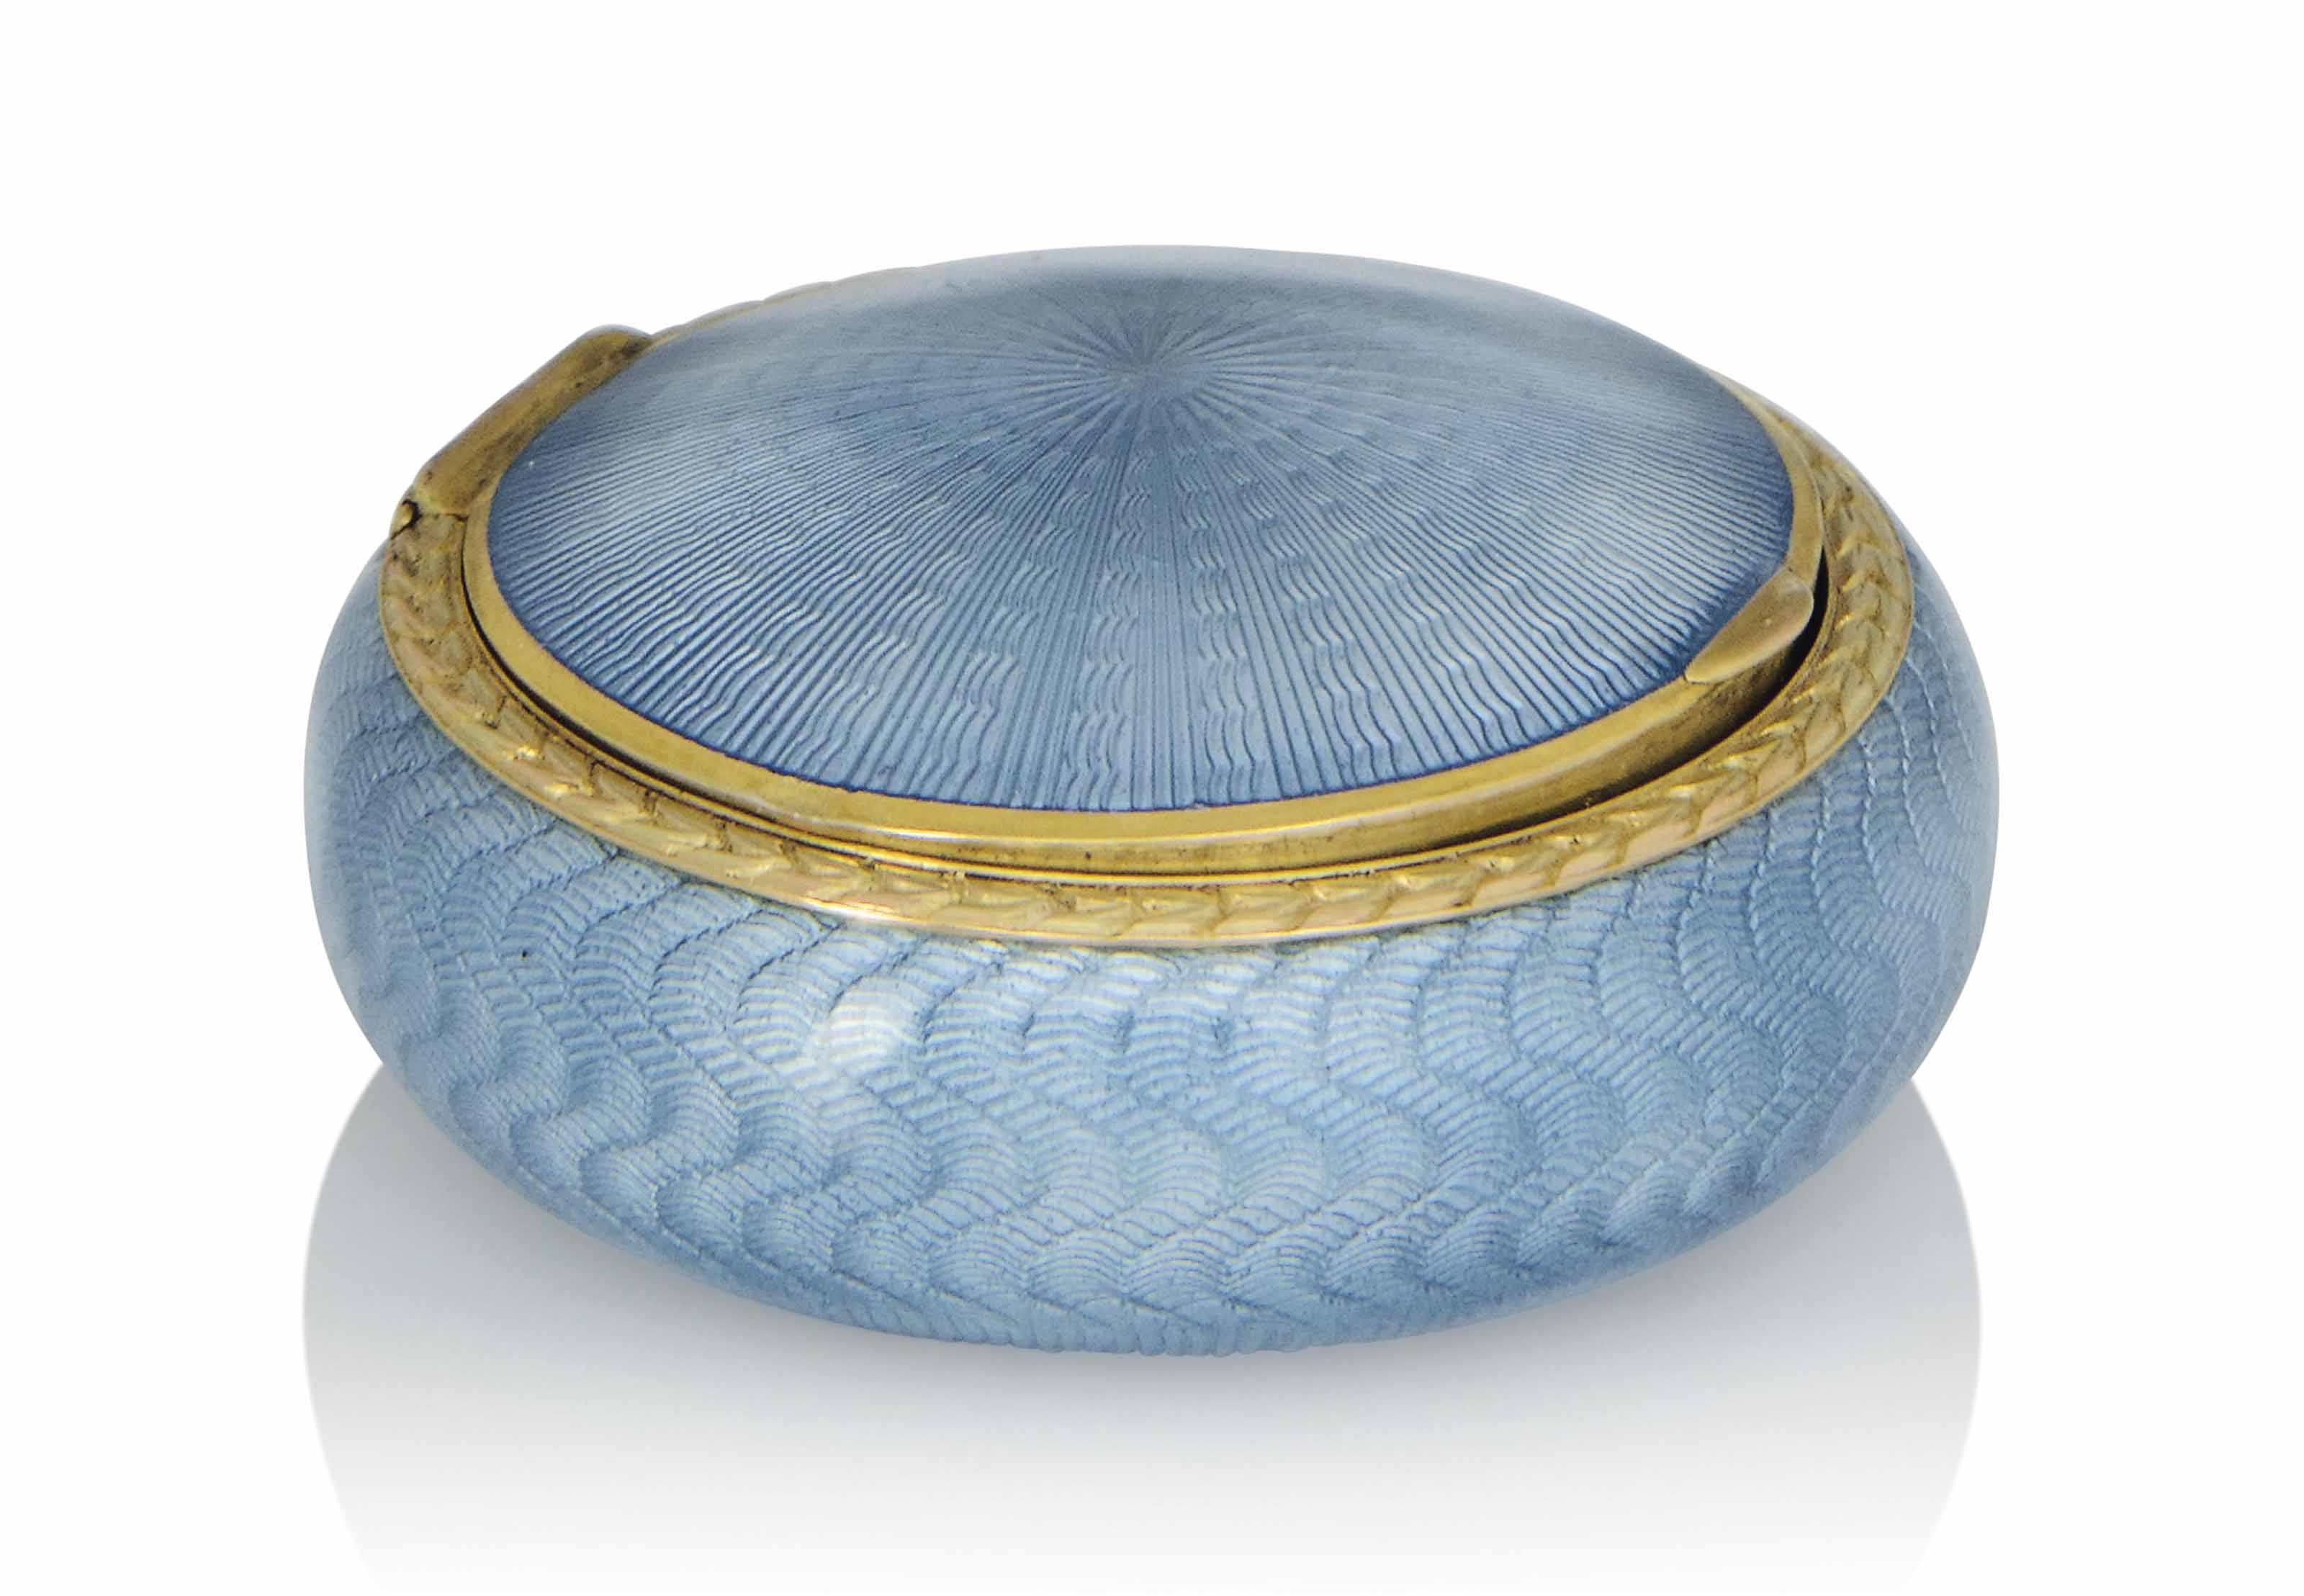 A RUSSIAN SILVER-GILT AND POWDER-BLUE ENAMEL PILL BOX WITH GOLD MOUNT